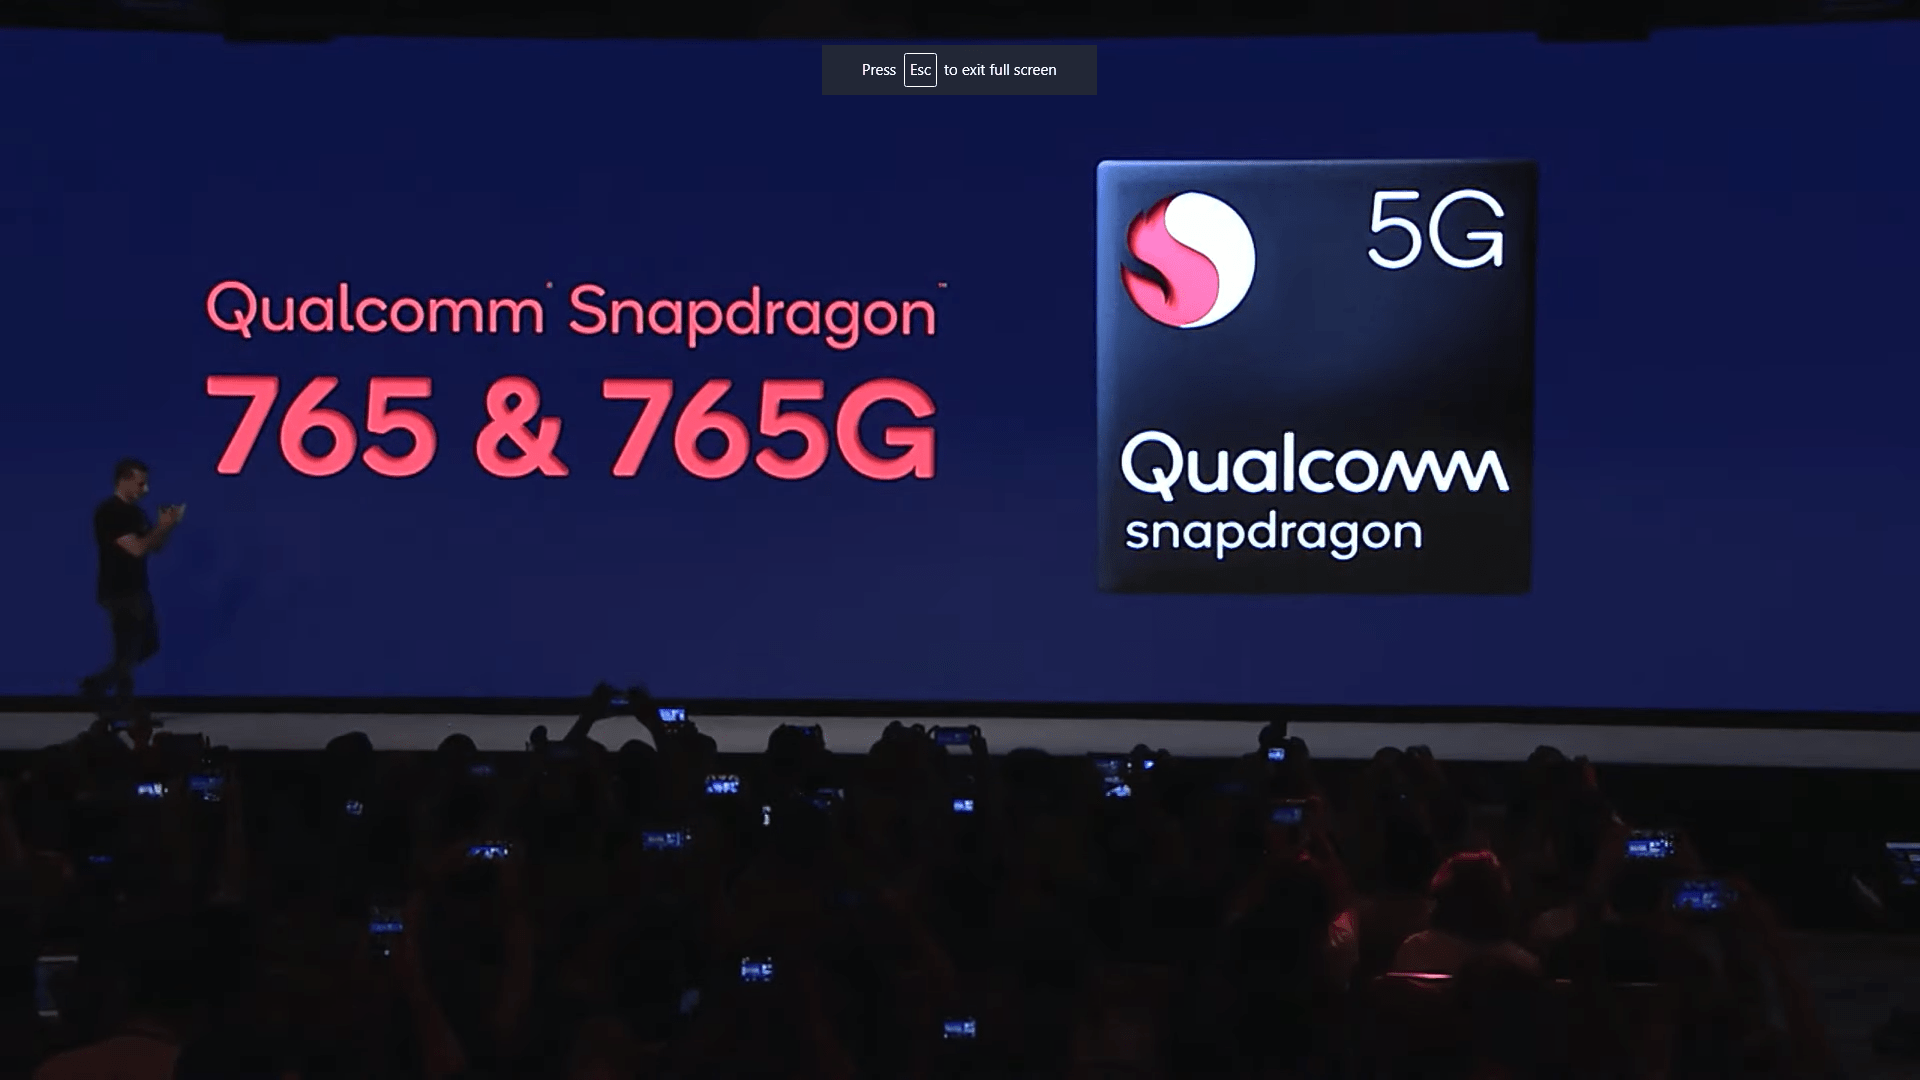 Google Pixel 5 is Cheaper due to Snapdragon 765G